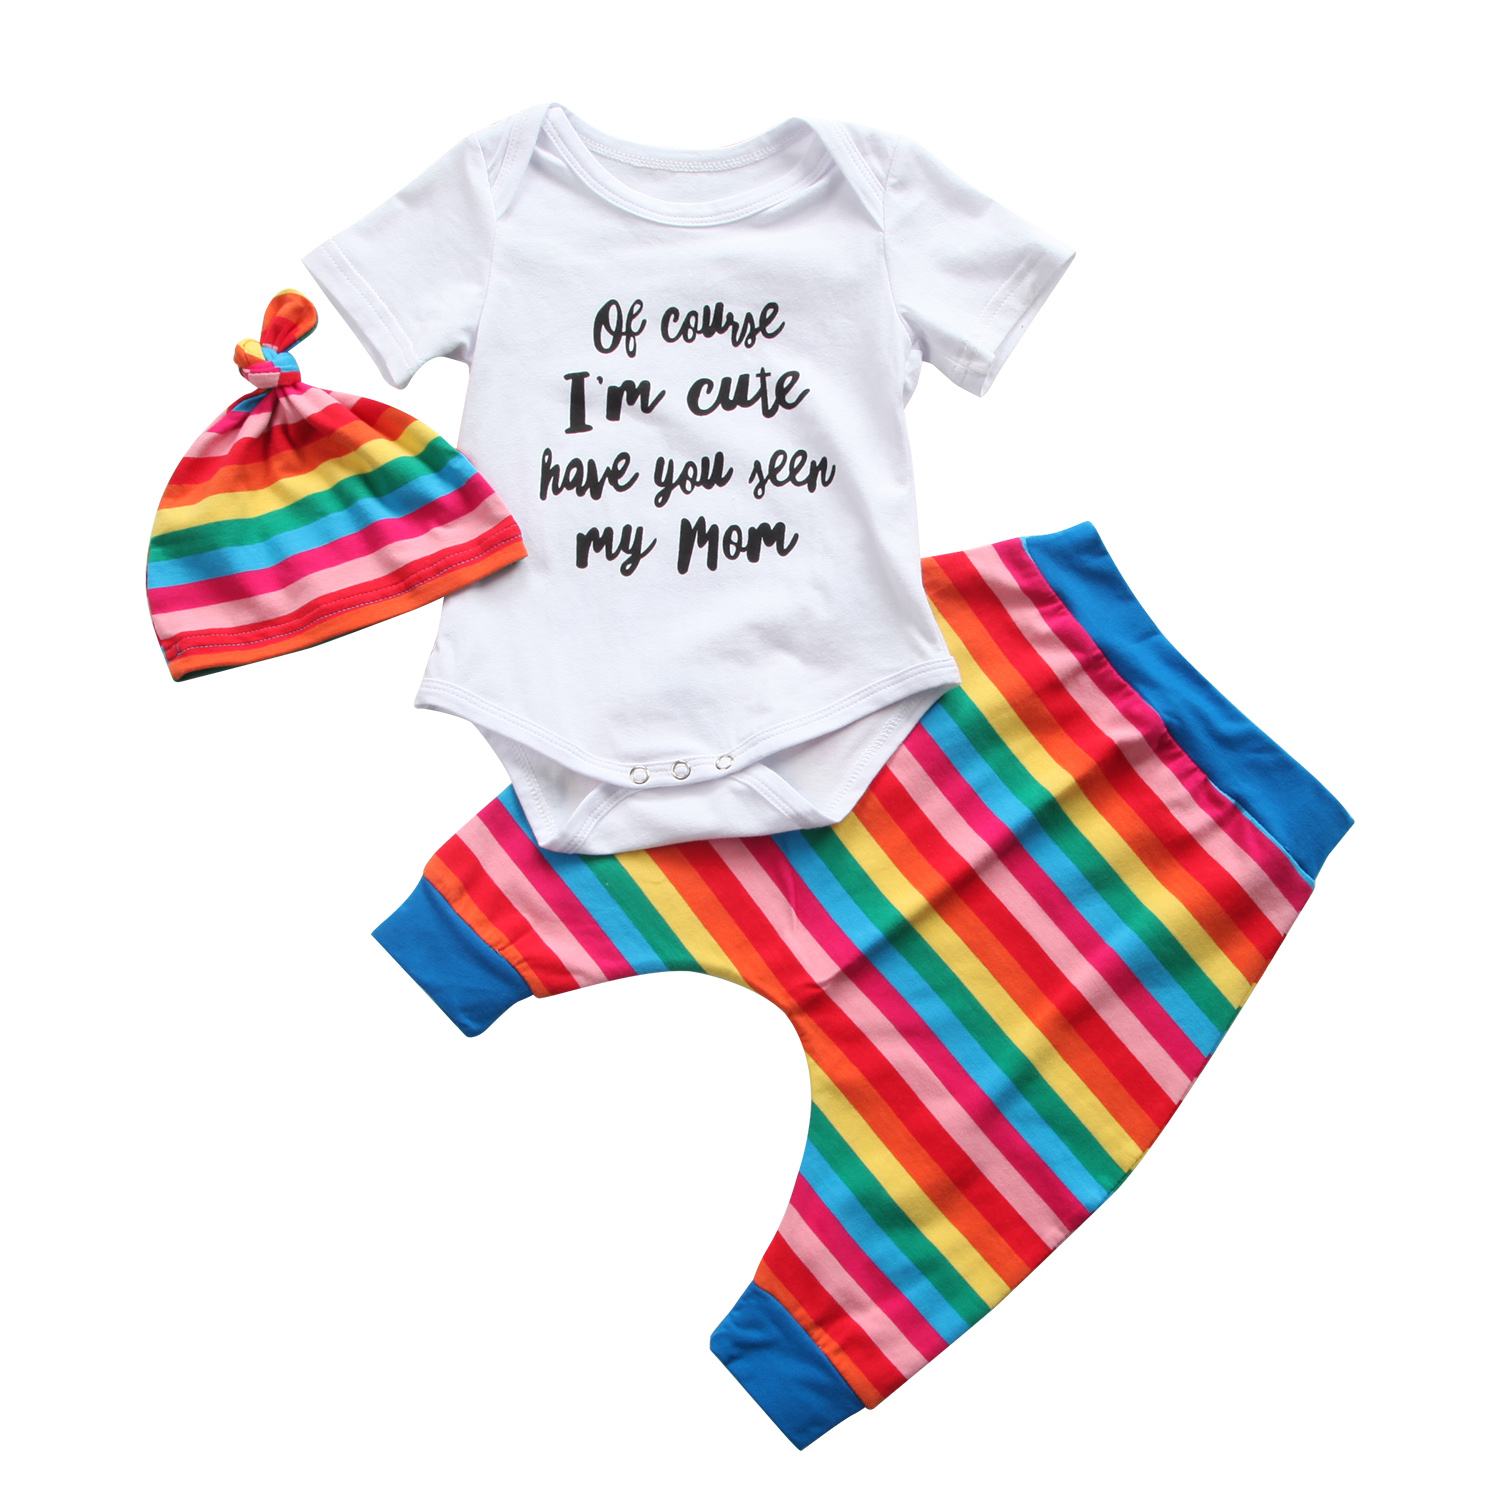 Summer Newborn Baby Girls Clothes Short Sleeve Romper Bodysuit Harem Pants Hat 3Pcs Outfits Casual Cute Rainbow Baby Sets pudcoco newborn infant baby girls clothes short sleeve floral romper headband summer cute cotton one piece clothes